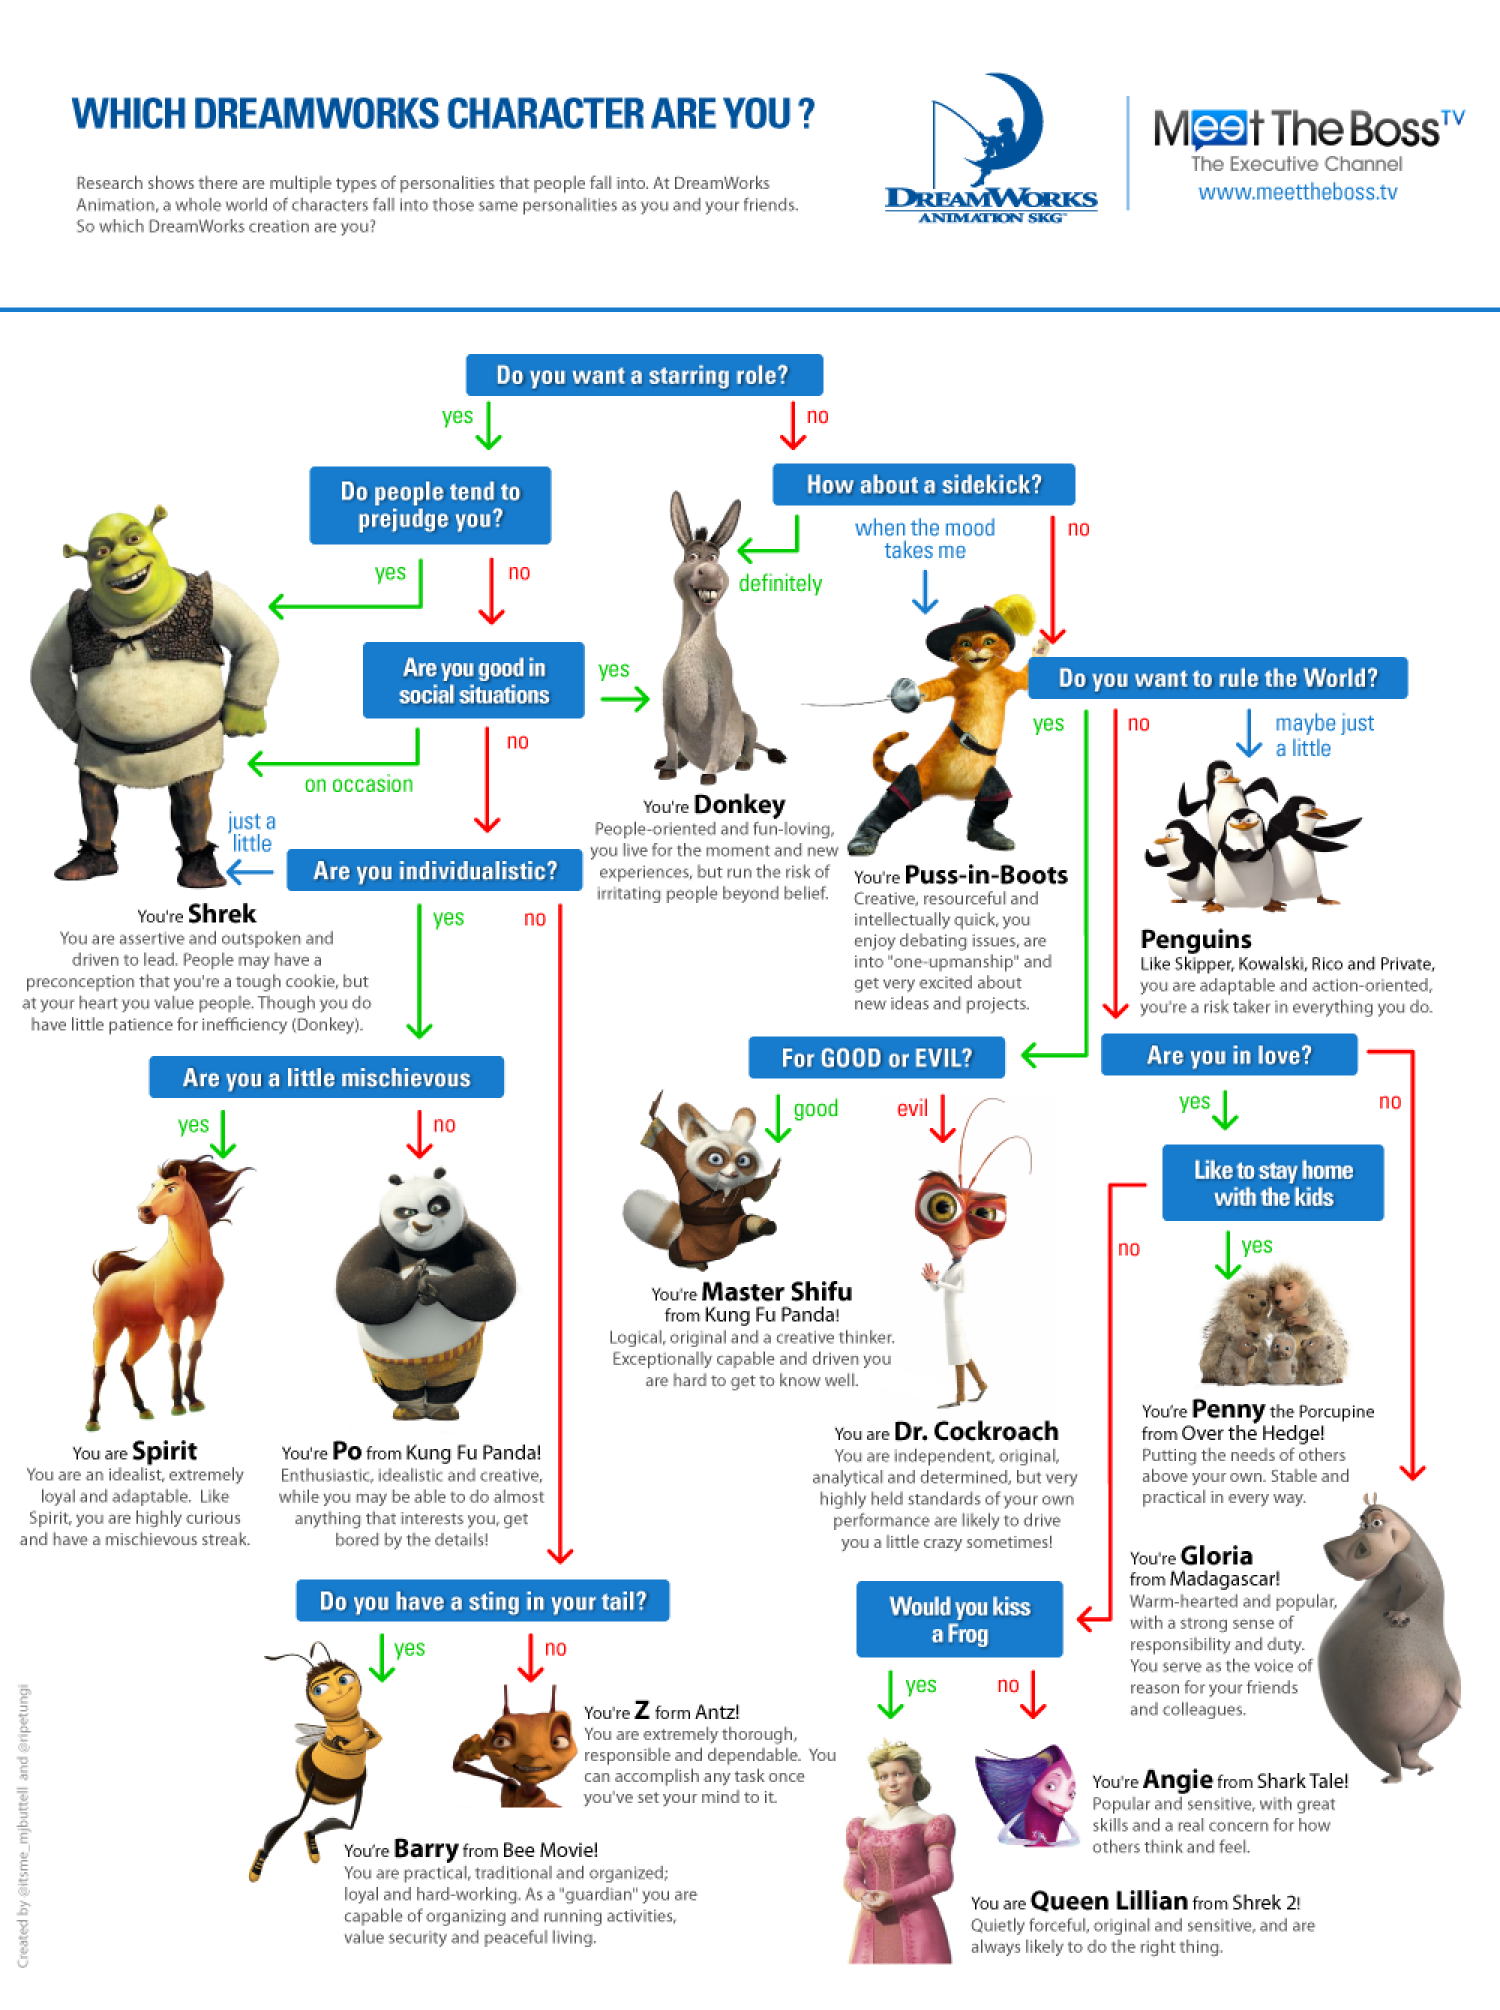 which dreamworks character are you